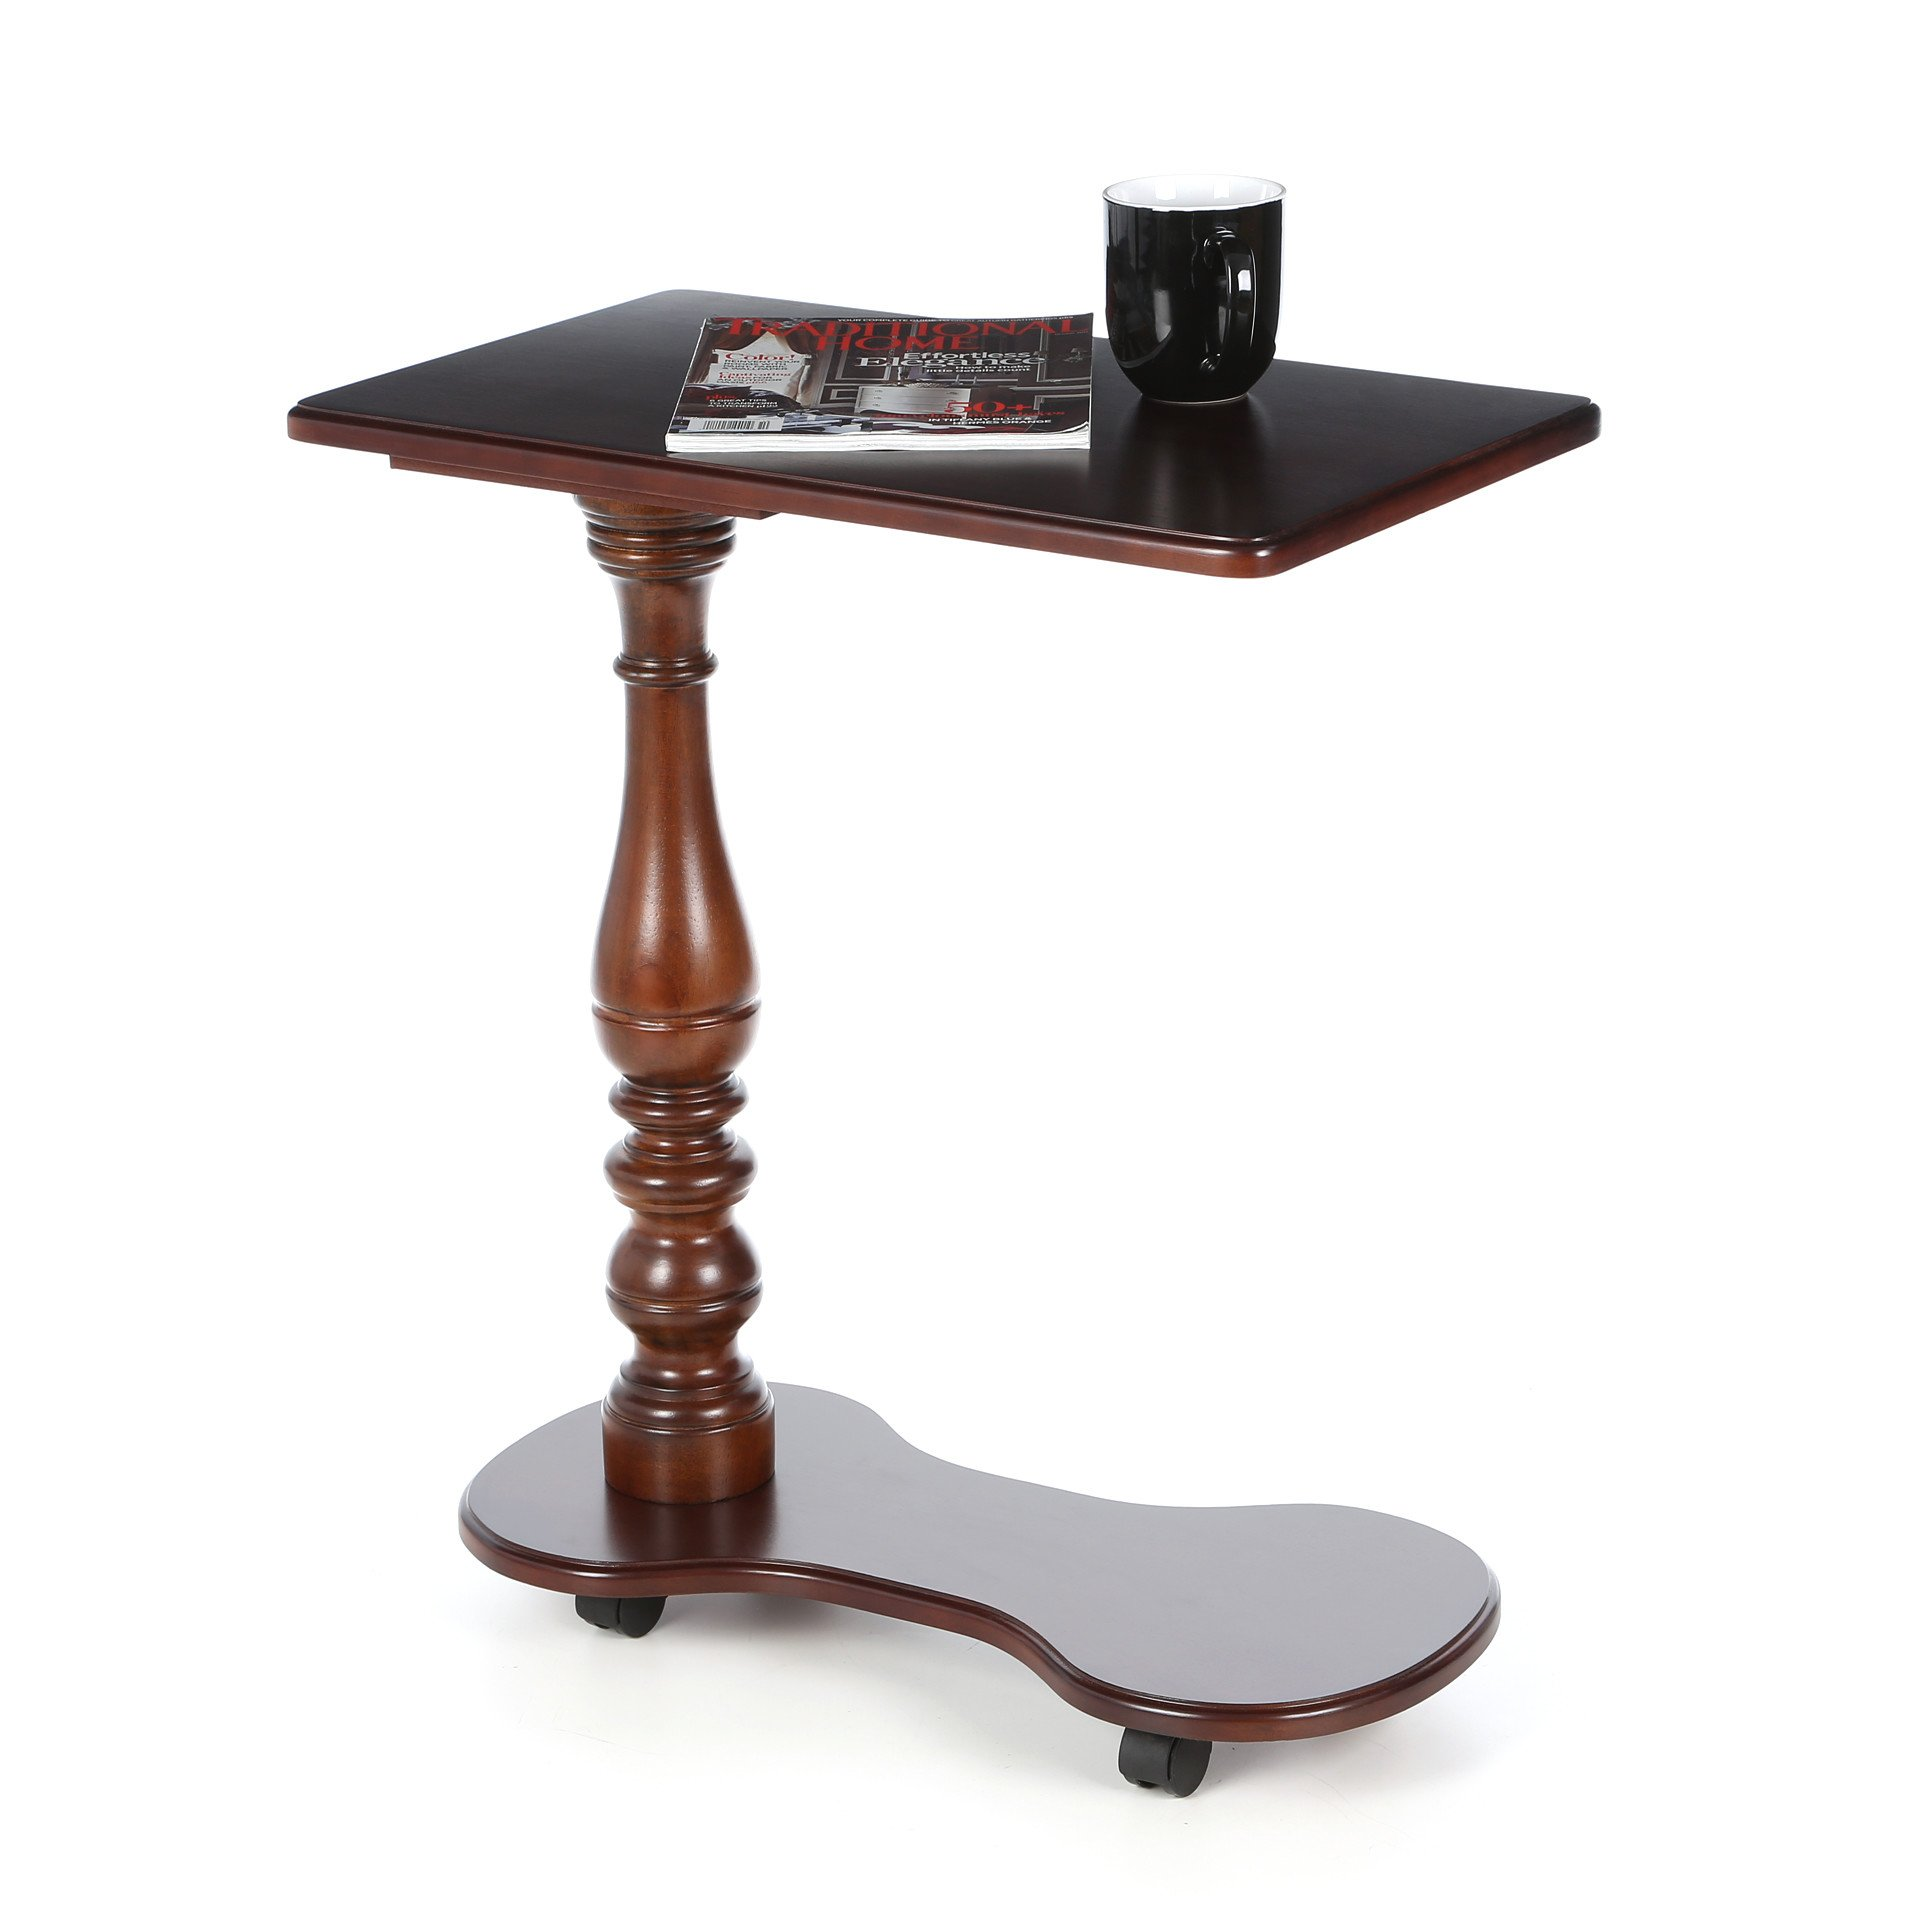 Portable Mobile Tray Table Made w/ MDF and Solid Wood Veneers in Cherry 28.5'' H x 24'' W x 14'' D